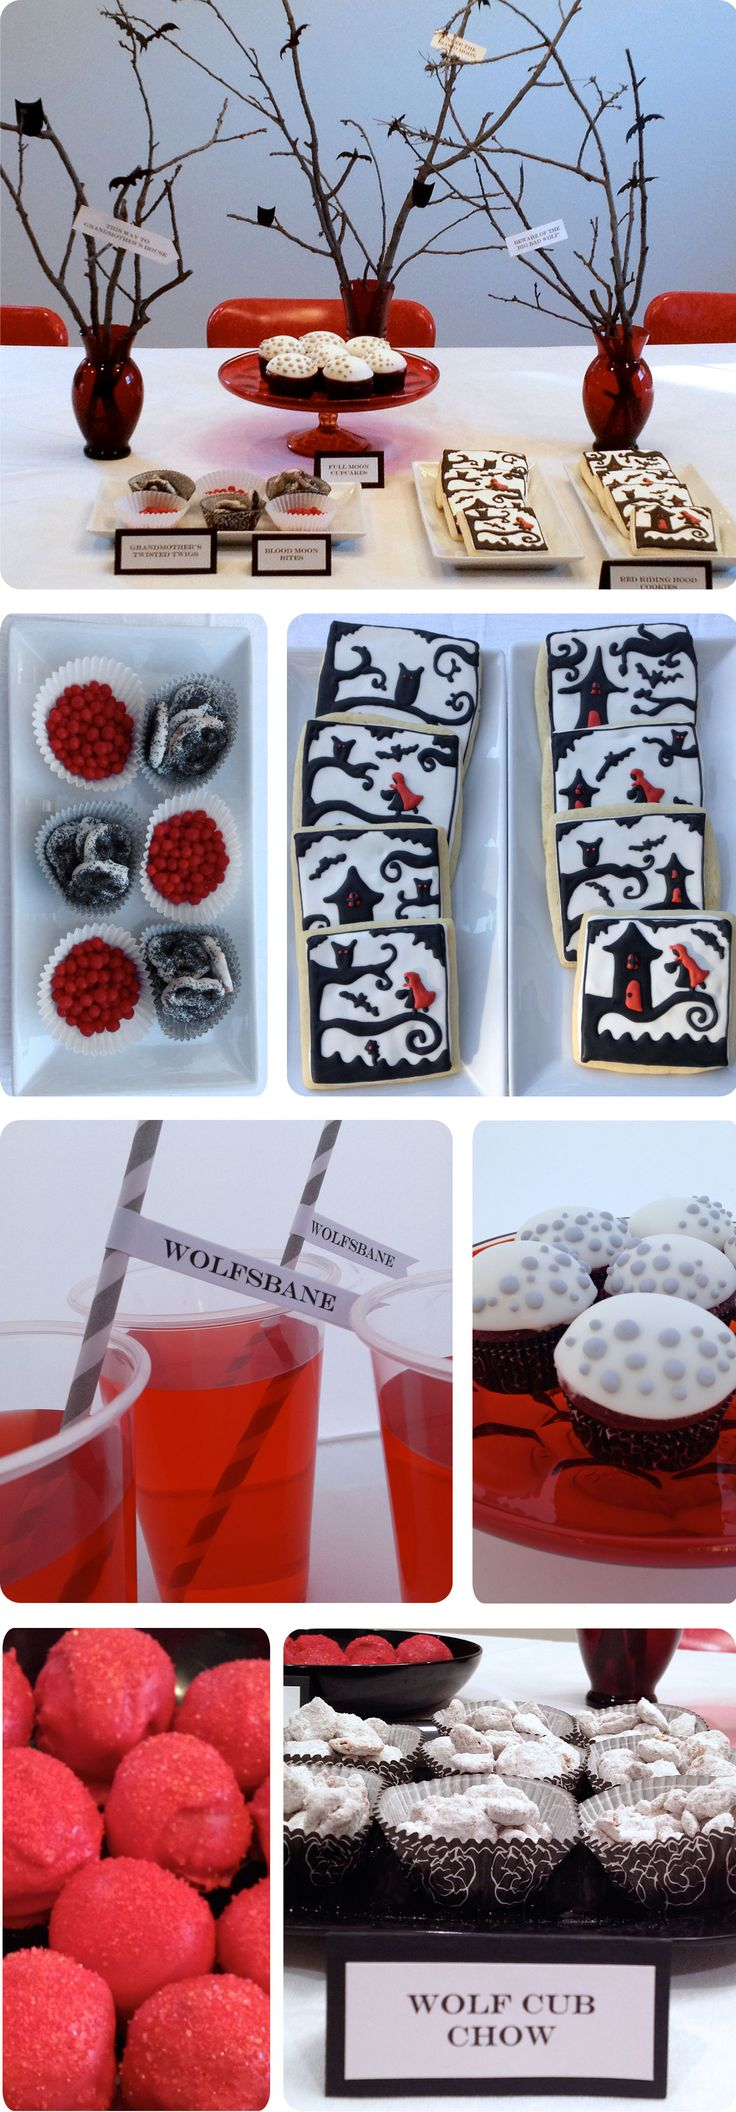 Love the owls, bats and red riding hood cookie design